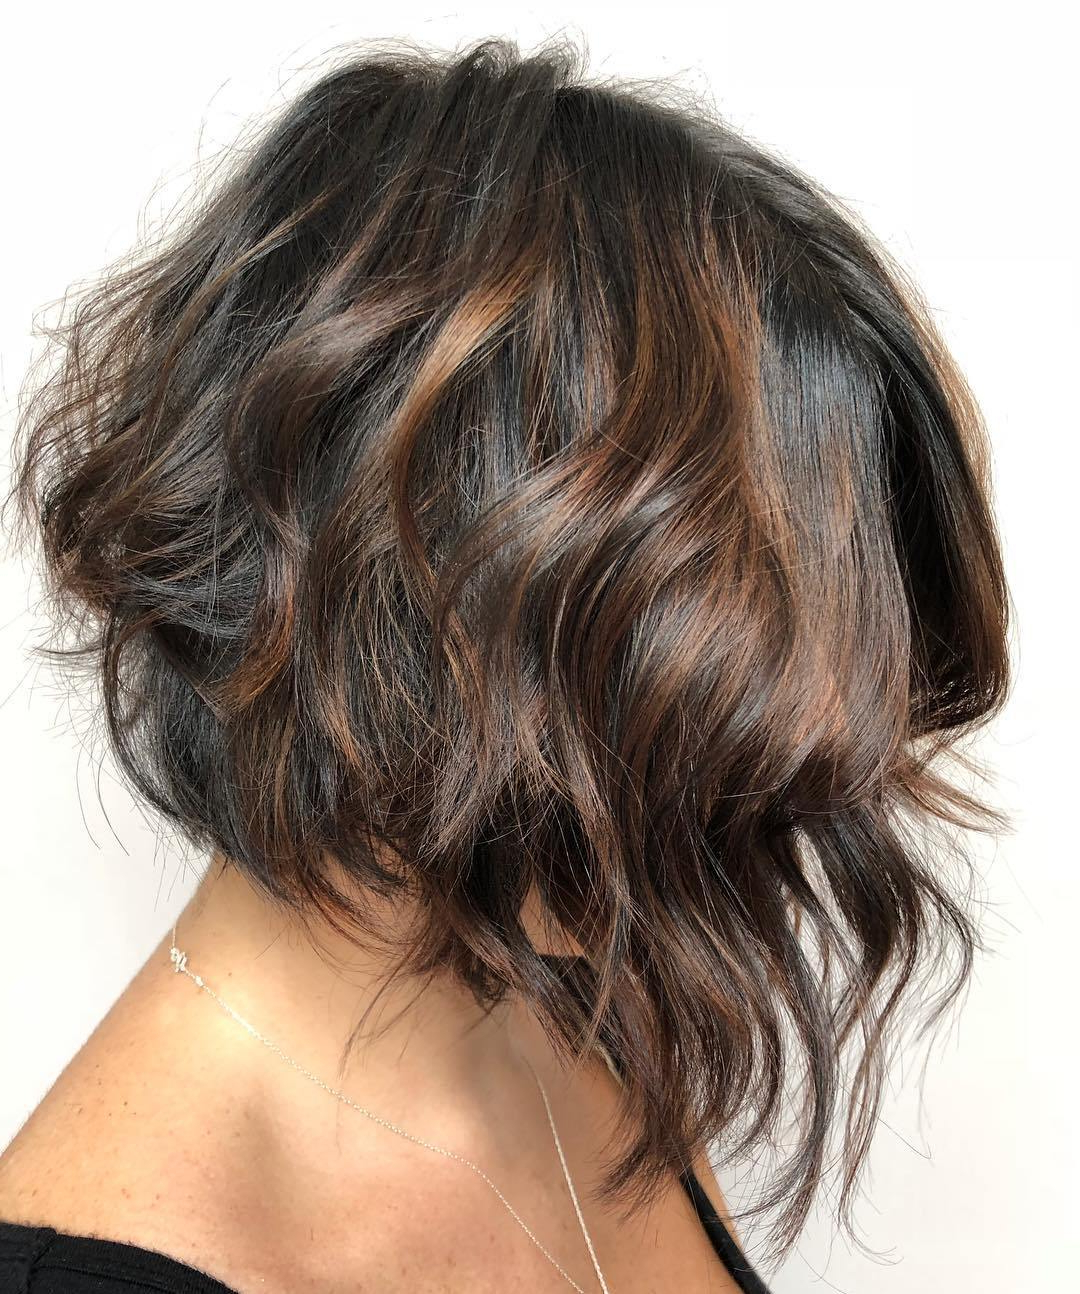 40 Short Hairstyles For Thick Hair (trendy In 2019 2020 For Razored Two Layer Bob Hairstyles For Thick Hair (View 9 of 20)